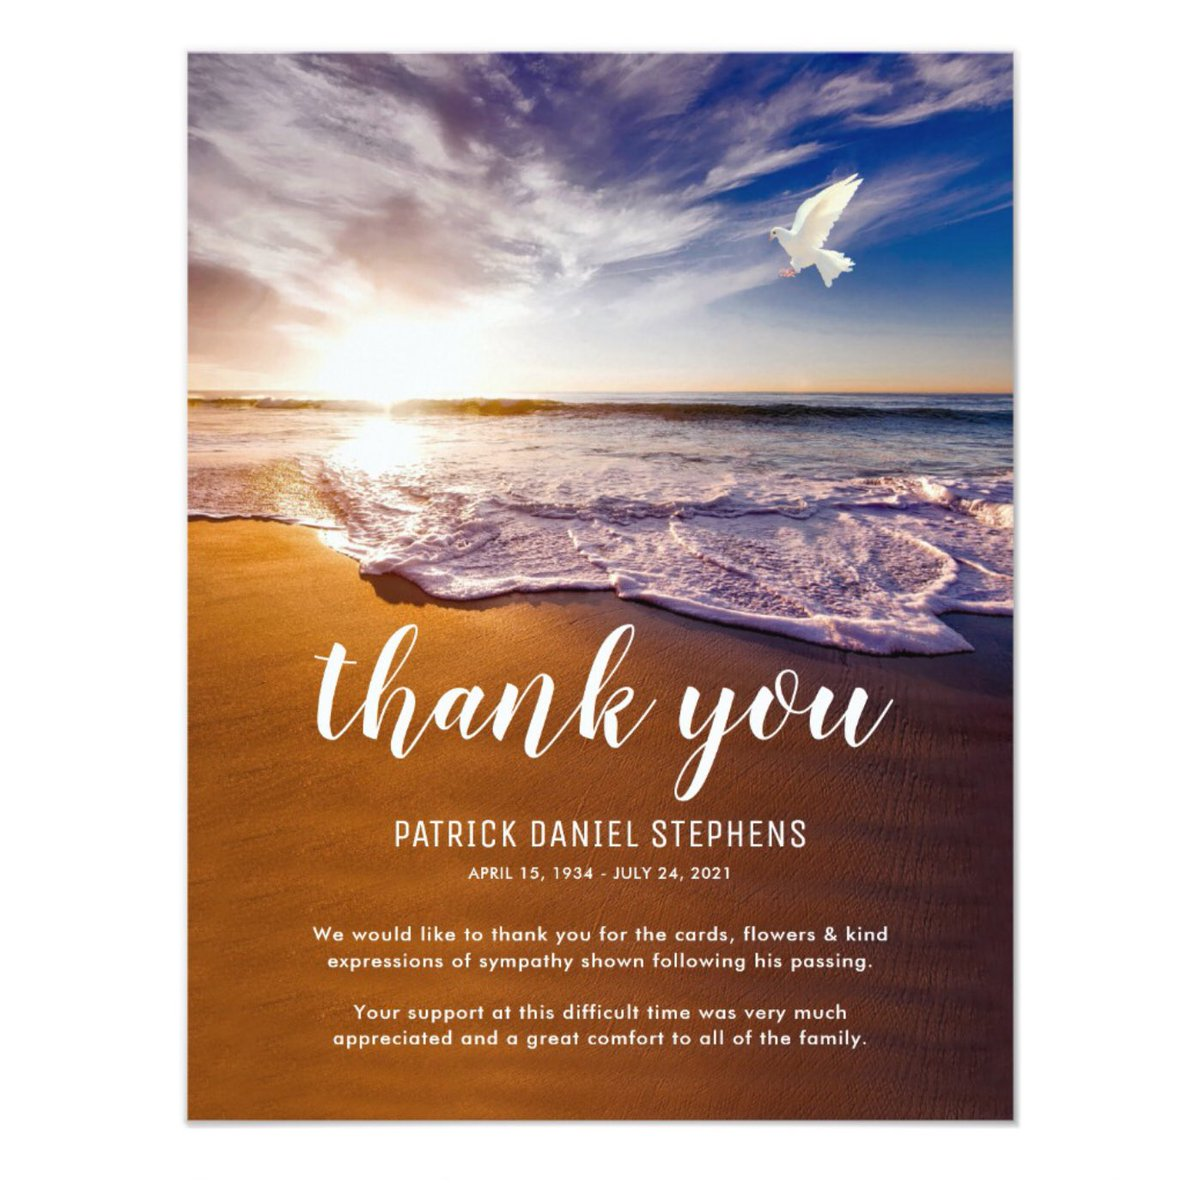 Elaine foster on twitter funeral thank you note card httpst elaine foster on twitter funeral thank you note card httpstdhkvkbls5l funeral memorial condolence sympathy zb6sties izmirmasajfo